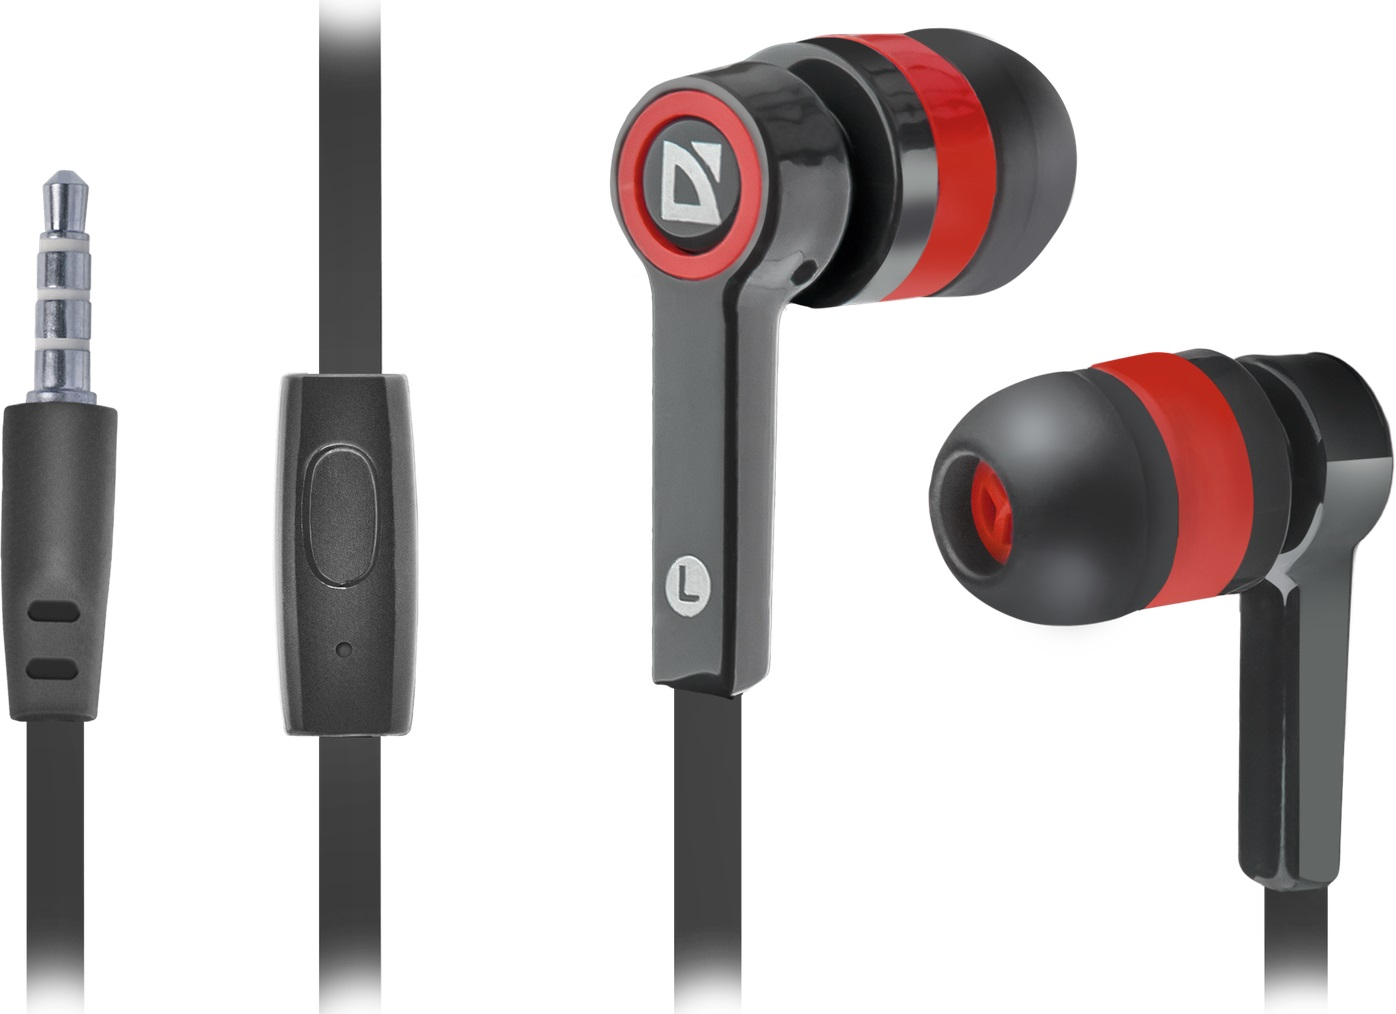 DEFENDER Headset for mobile devices Pulse 420 black + red in-ear